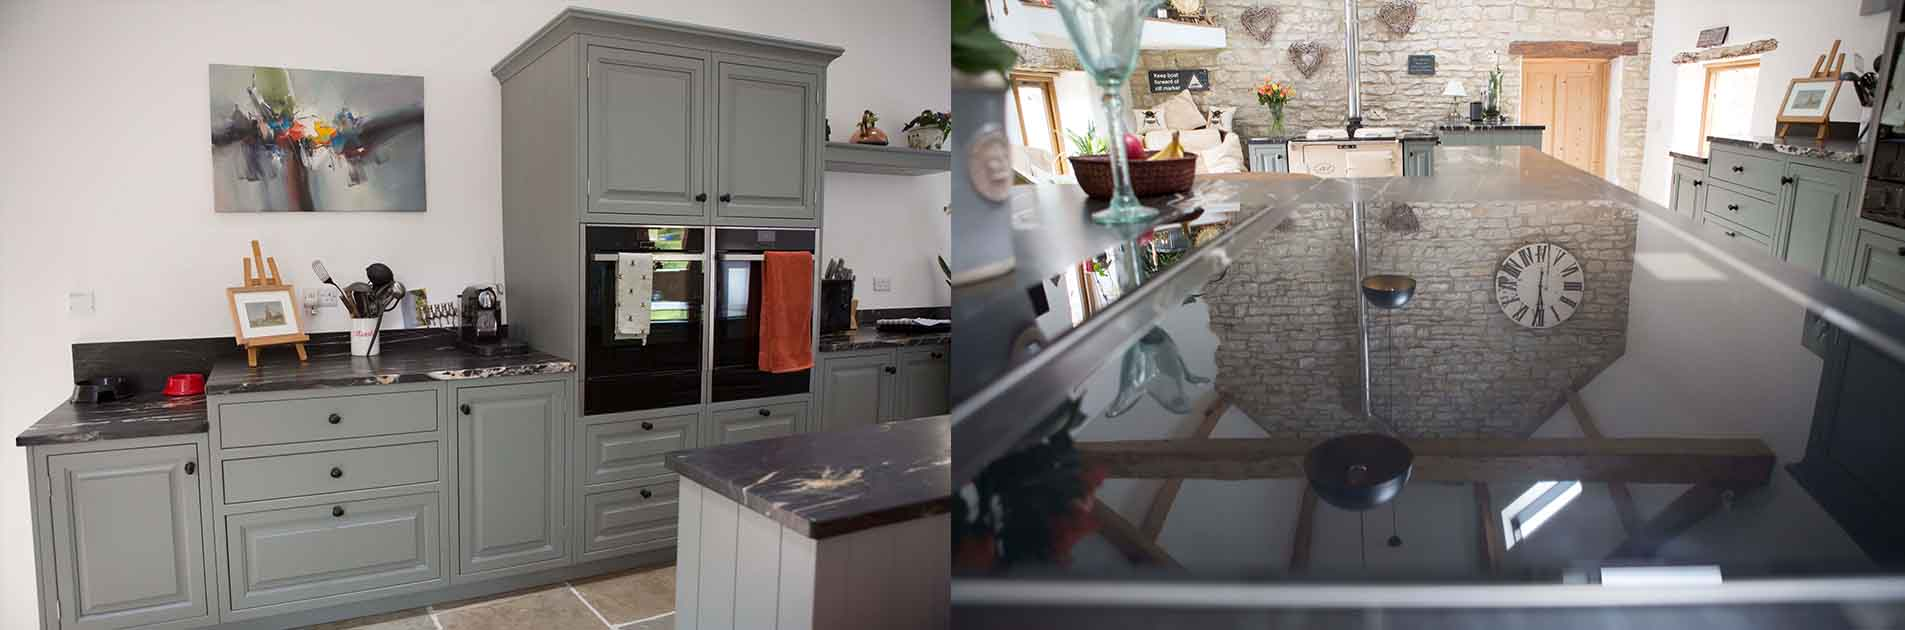 Kitchen Case Study: Prentice kitchen cabinetry and reflection of the beautiful high beams